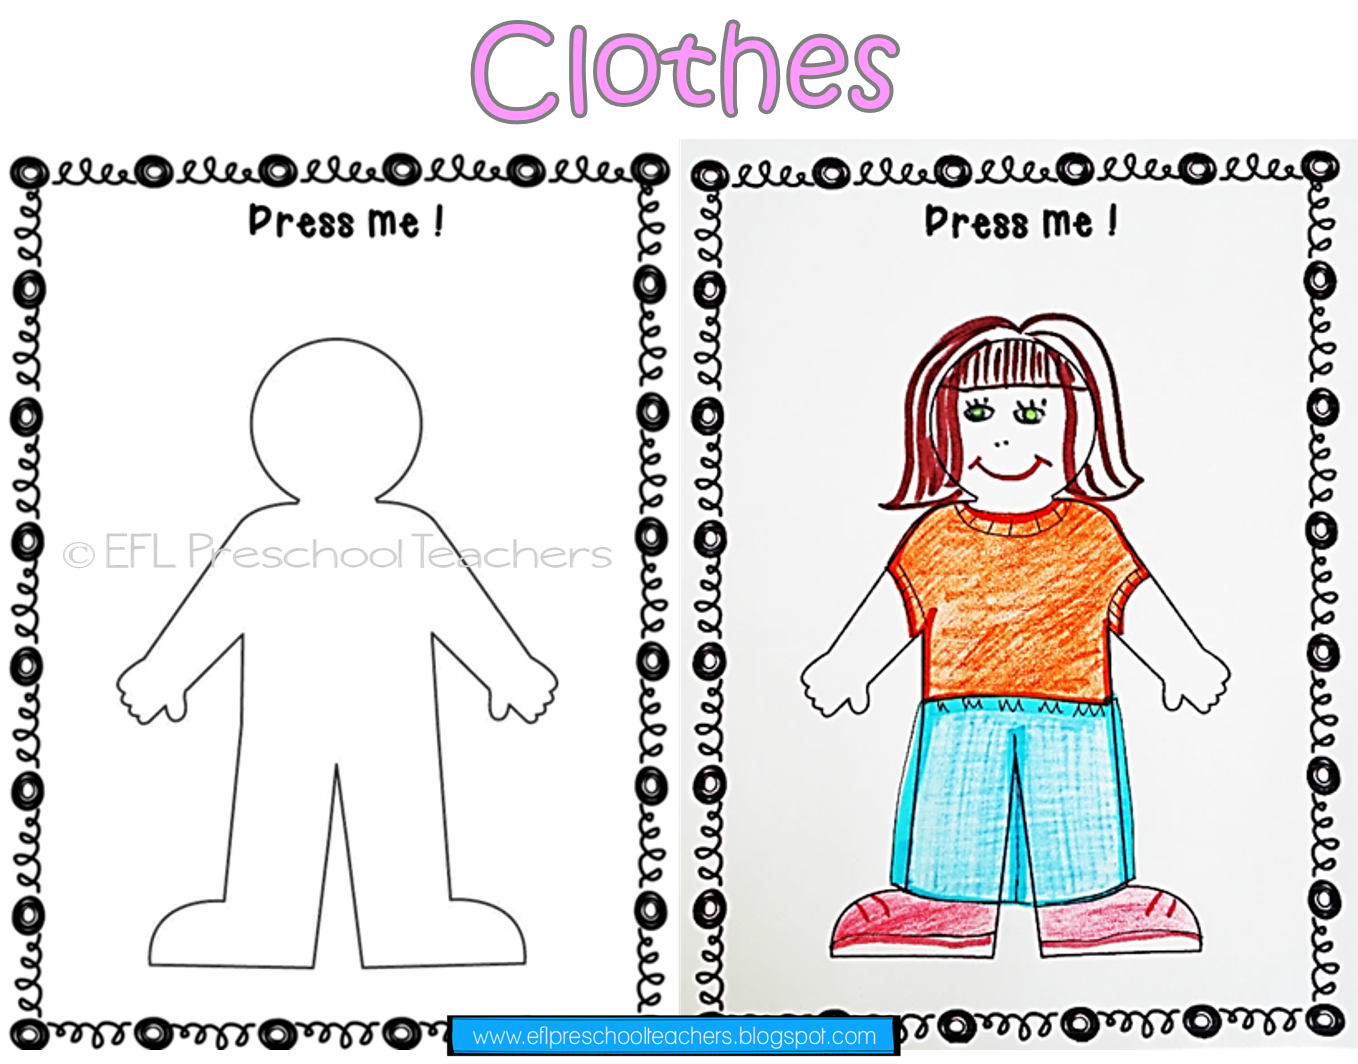 Esl Clothes Worksheet 2 Students Draw Themselves Or Another Student Have Them Describe What Their Character Is Wearing Clothes Worksheet Student Drawing Esl [ 1064 x 1358 Pixel ]